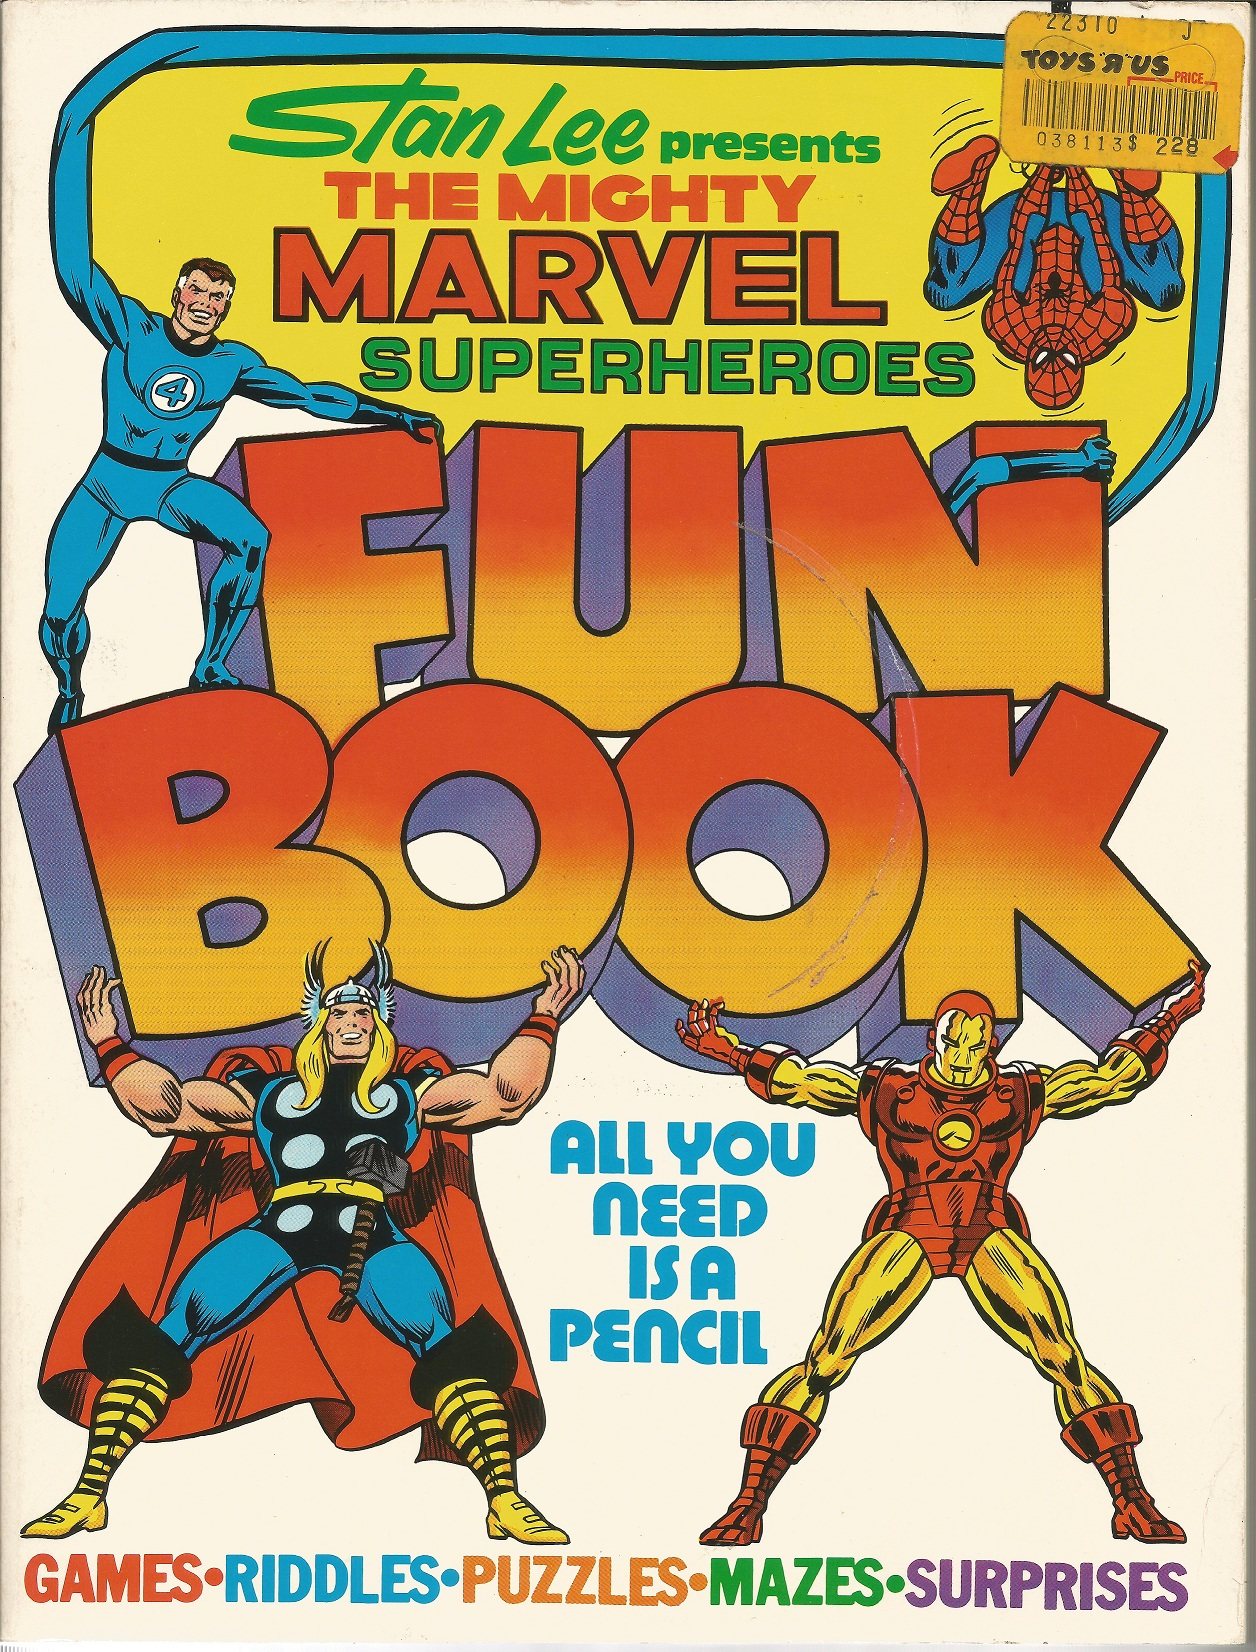 Marvel Superheroes Fun Book 1976 2 Warps To Neptune Sticker Activity Books My Big And Mighty